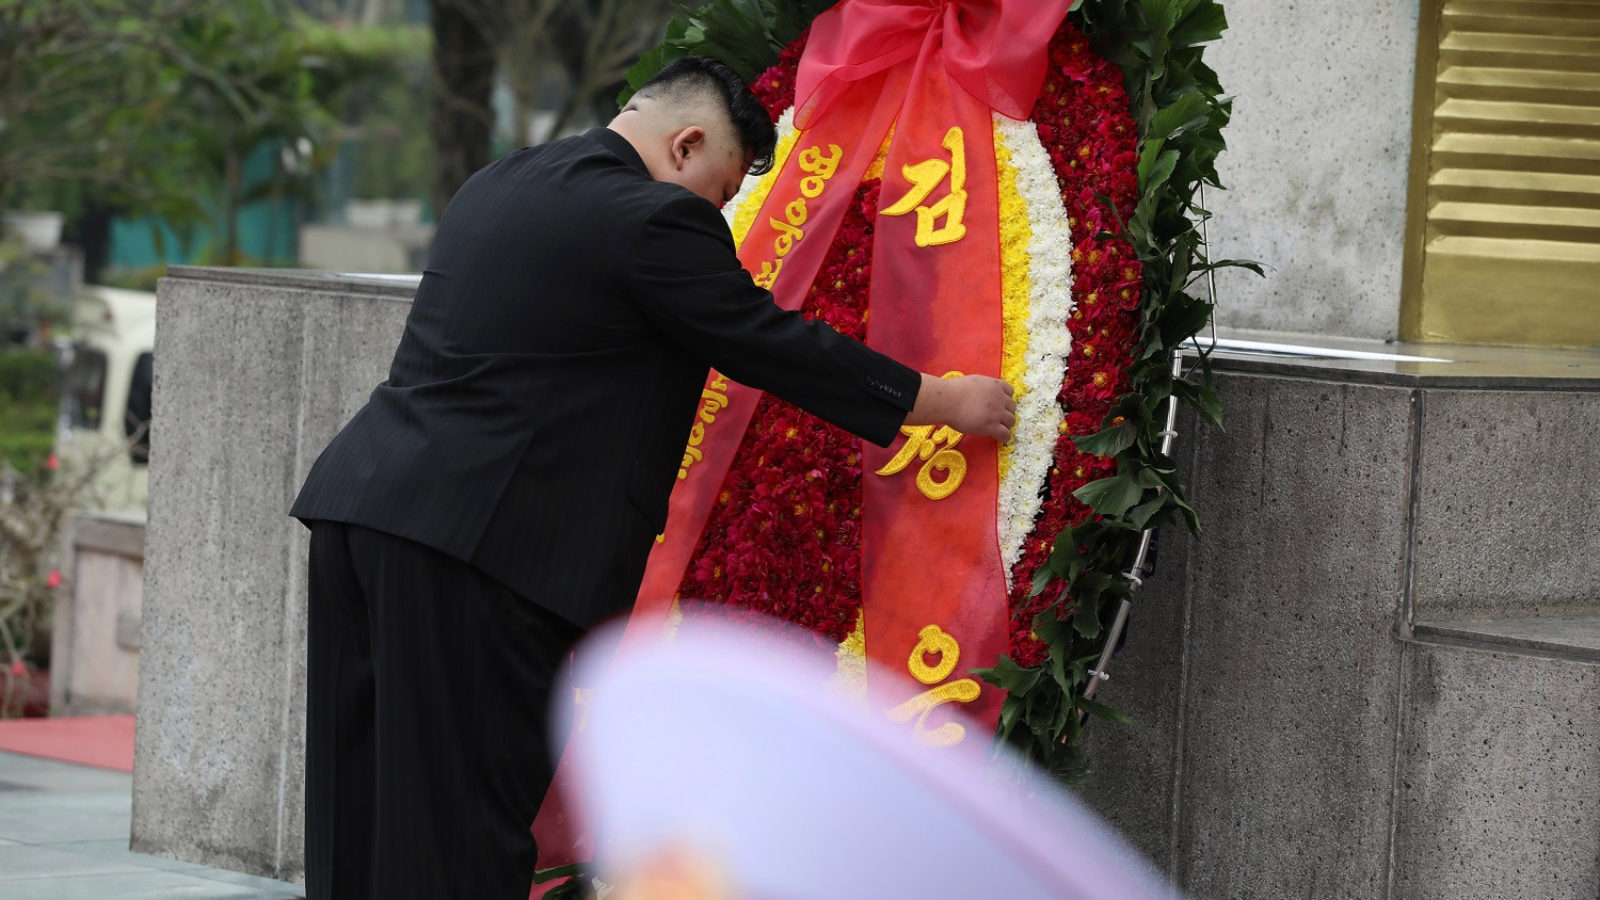 North Korean Leader Kim Jong-un Visits Vietnam and lays a red, white, and yellow wreath in Hanoi